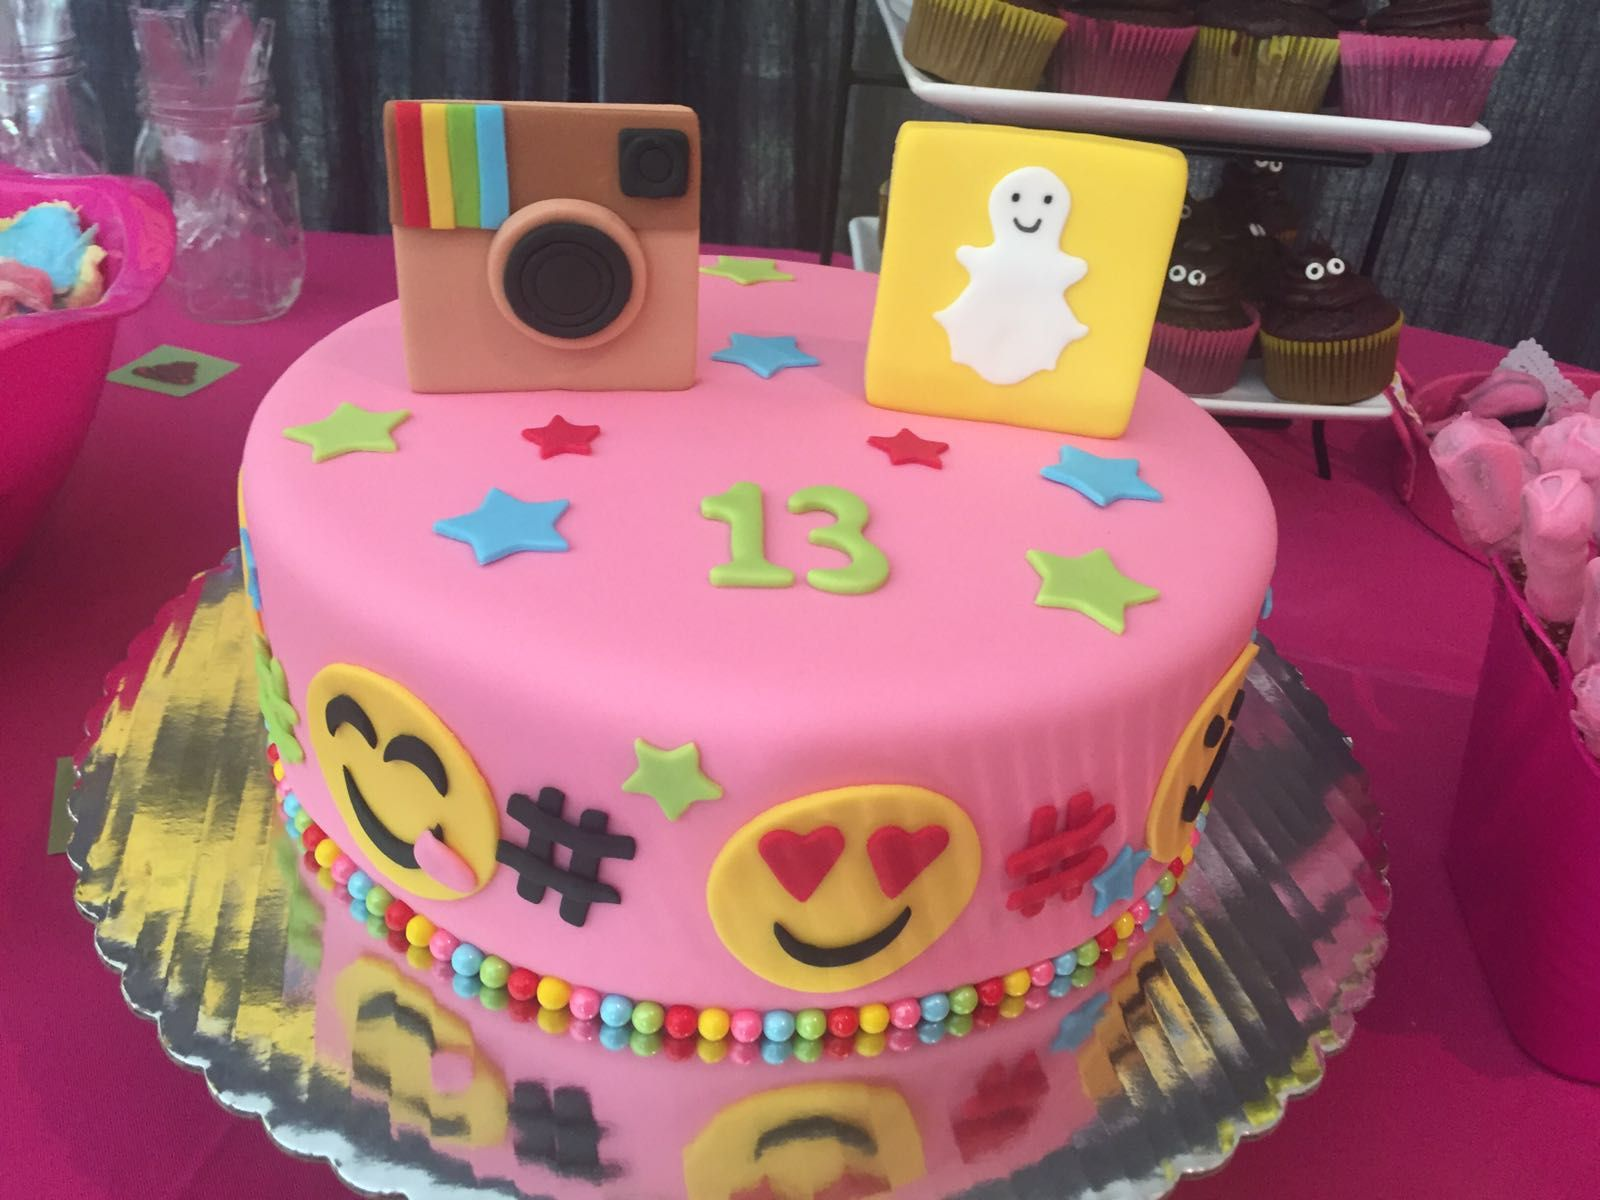 Cake Ideas For A 13th Birthday Party : Social Media Theme Cake for a 13th Birthday Party # ...